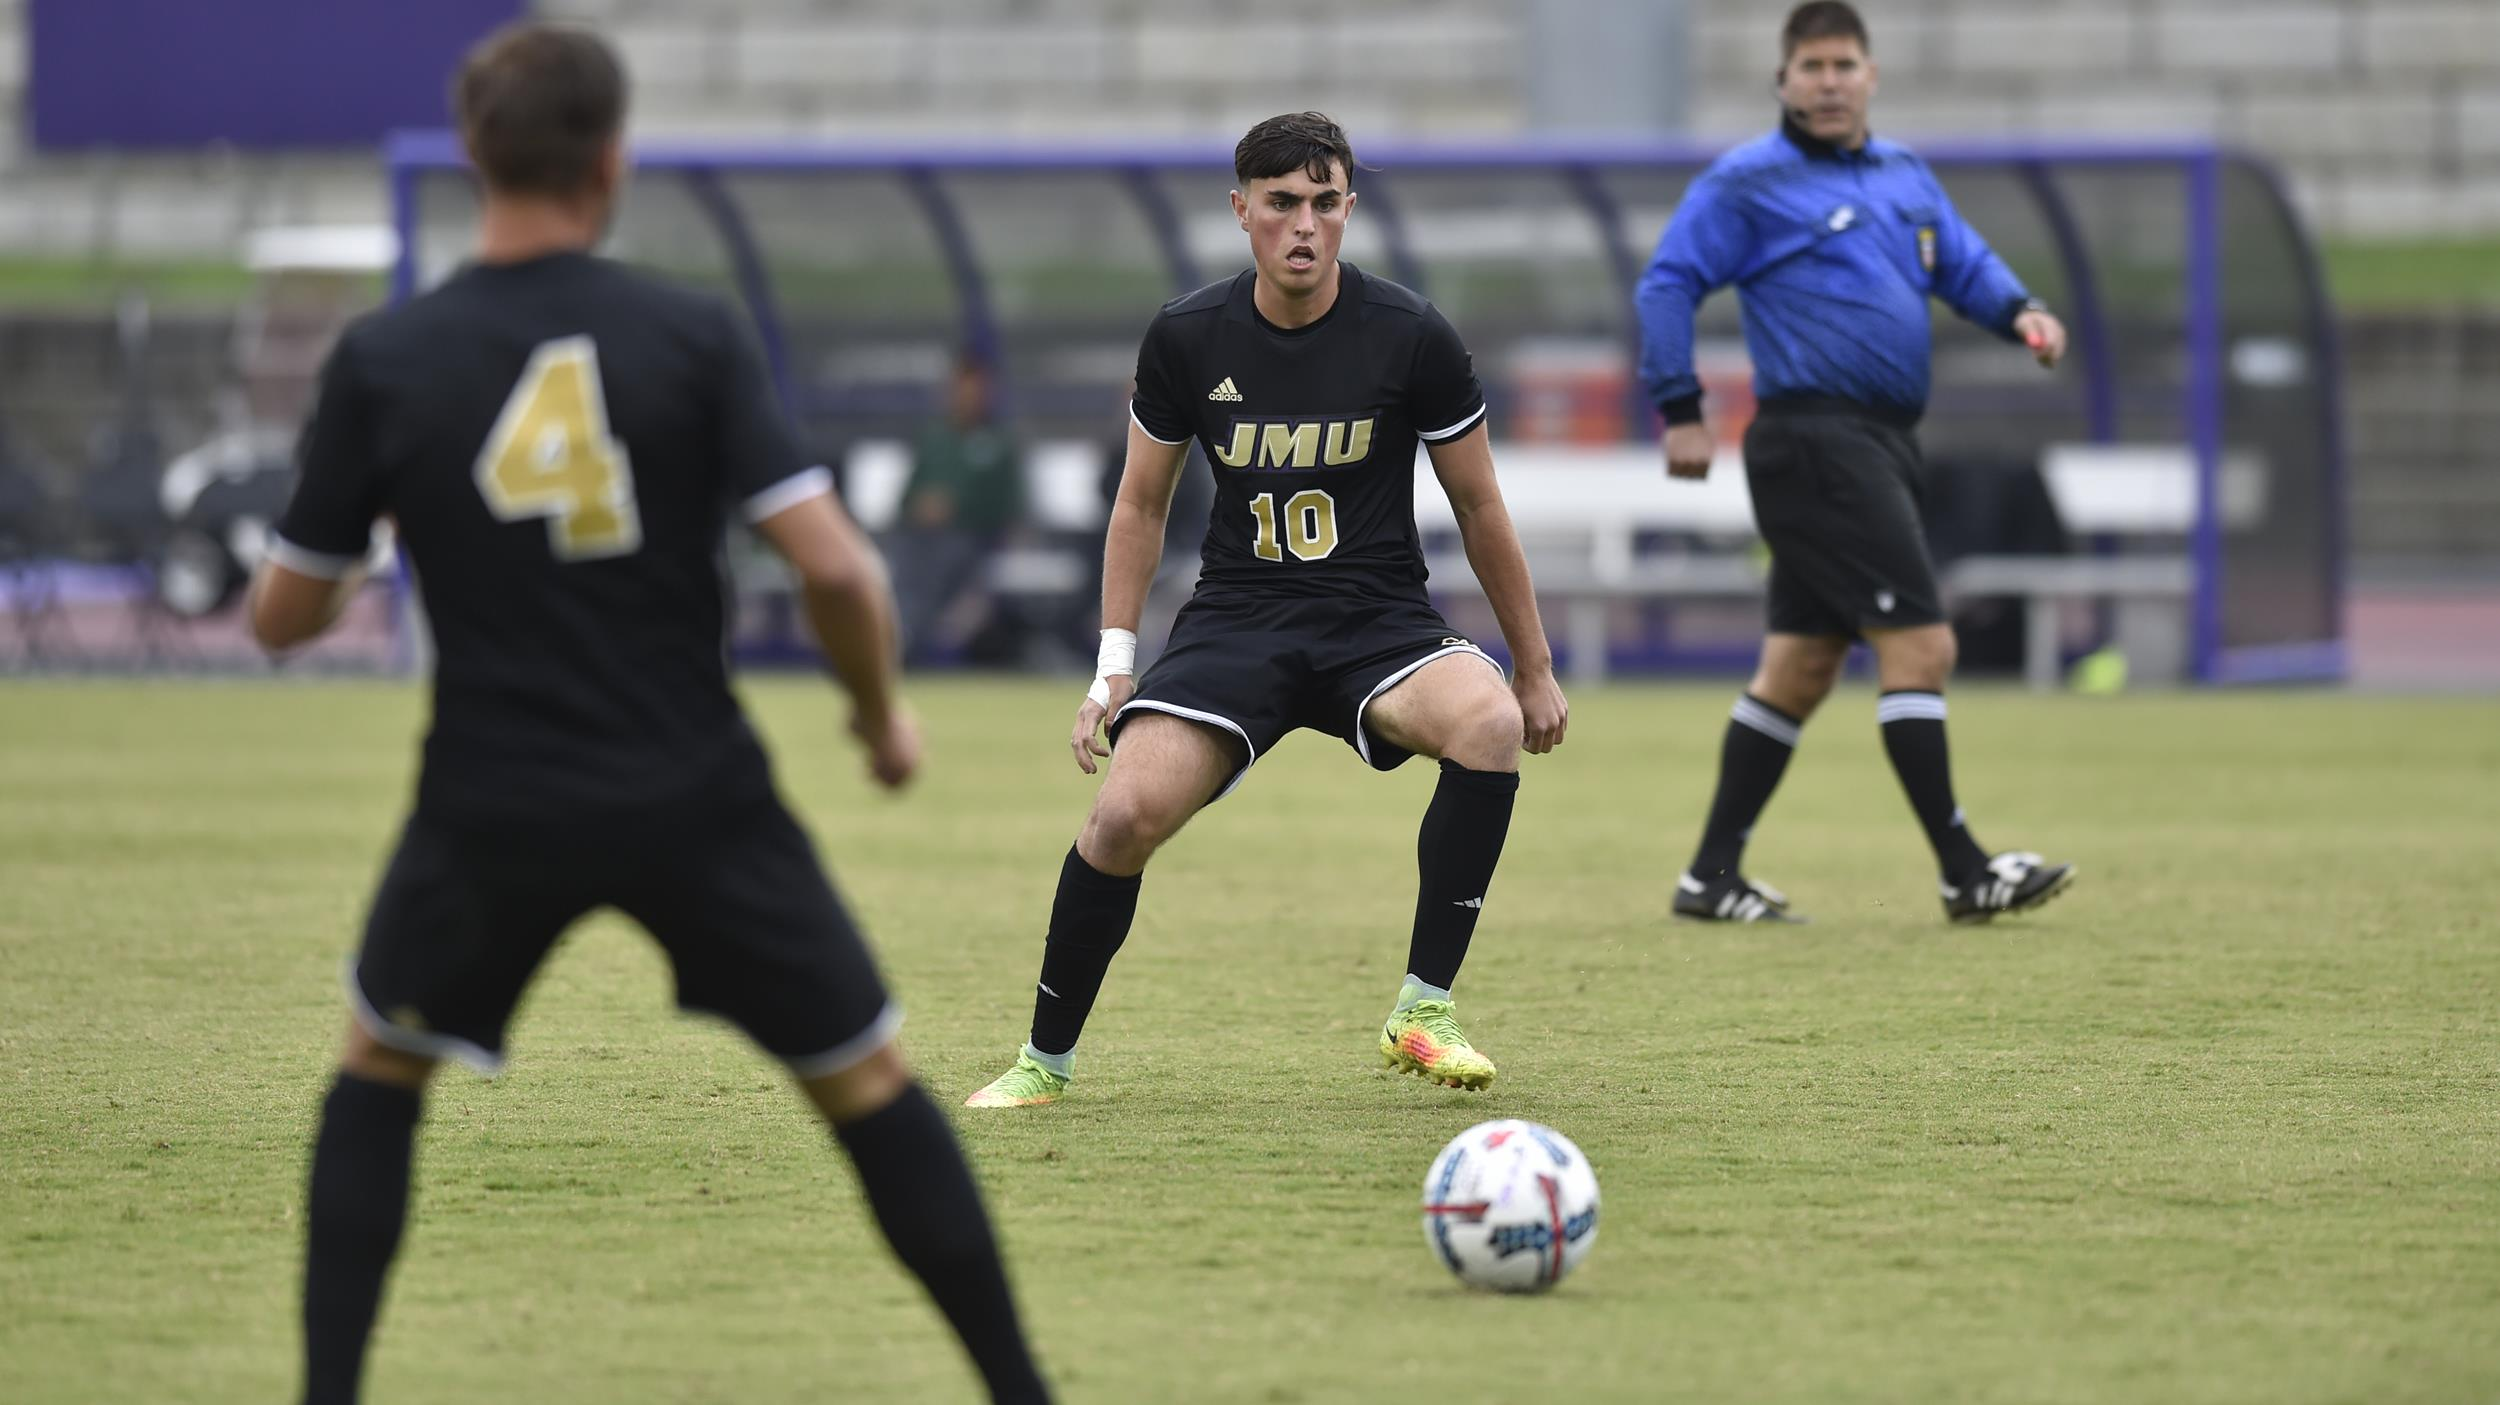 Men's Soccer: Dukes Unable to Answer Early Deficit and Fall to Radford, 4-3)